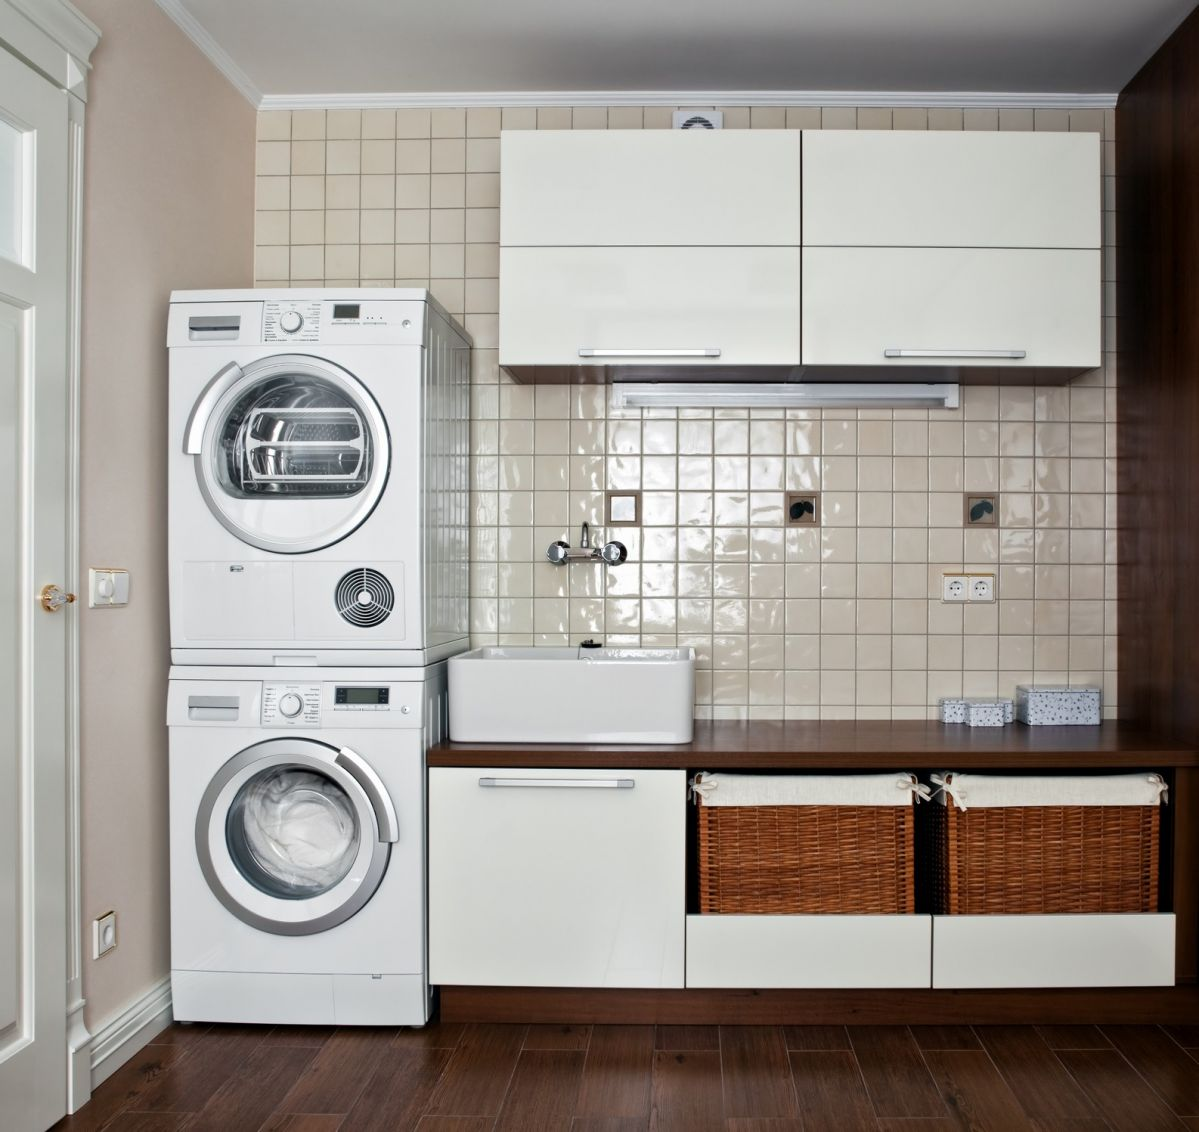 Funky and fun laundry room with some modern style